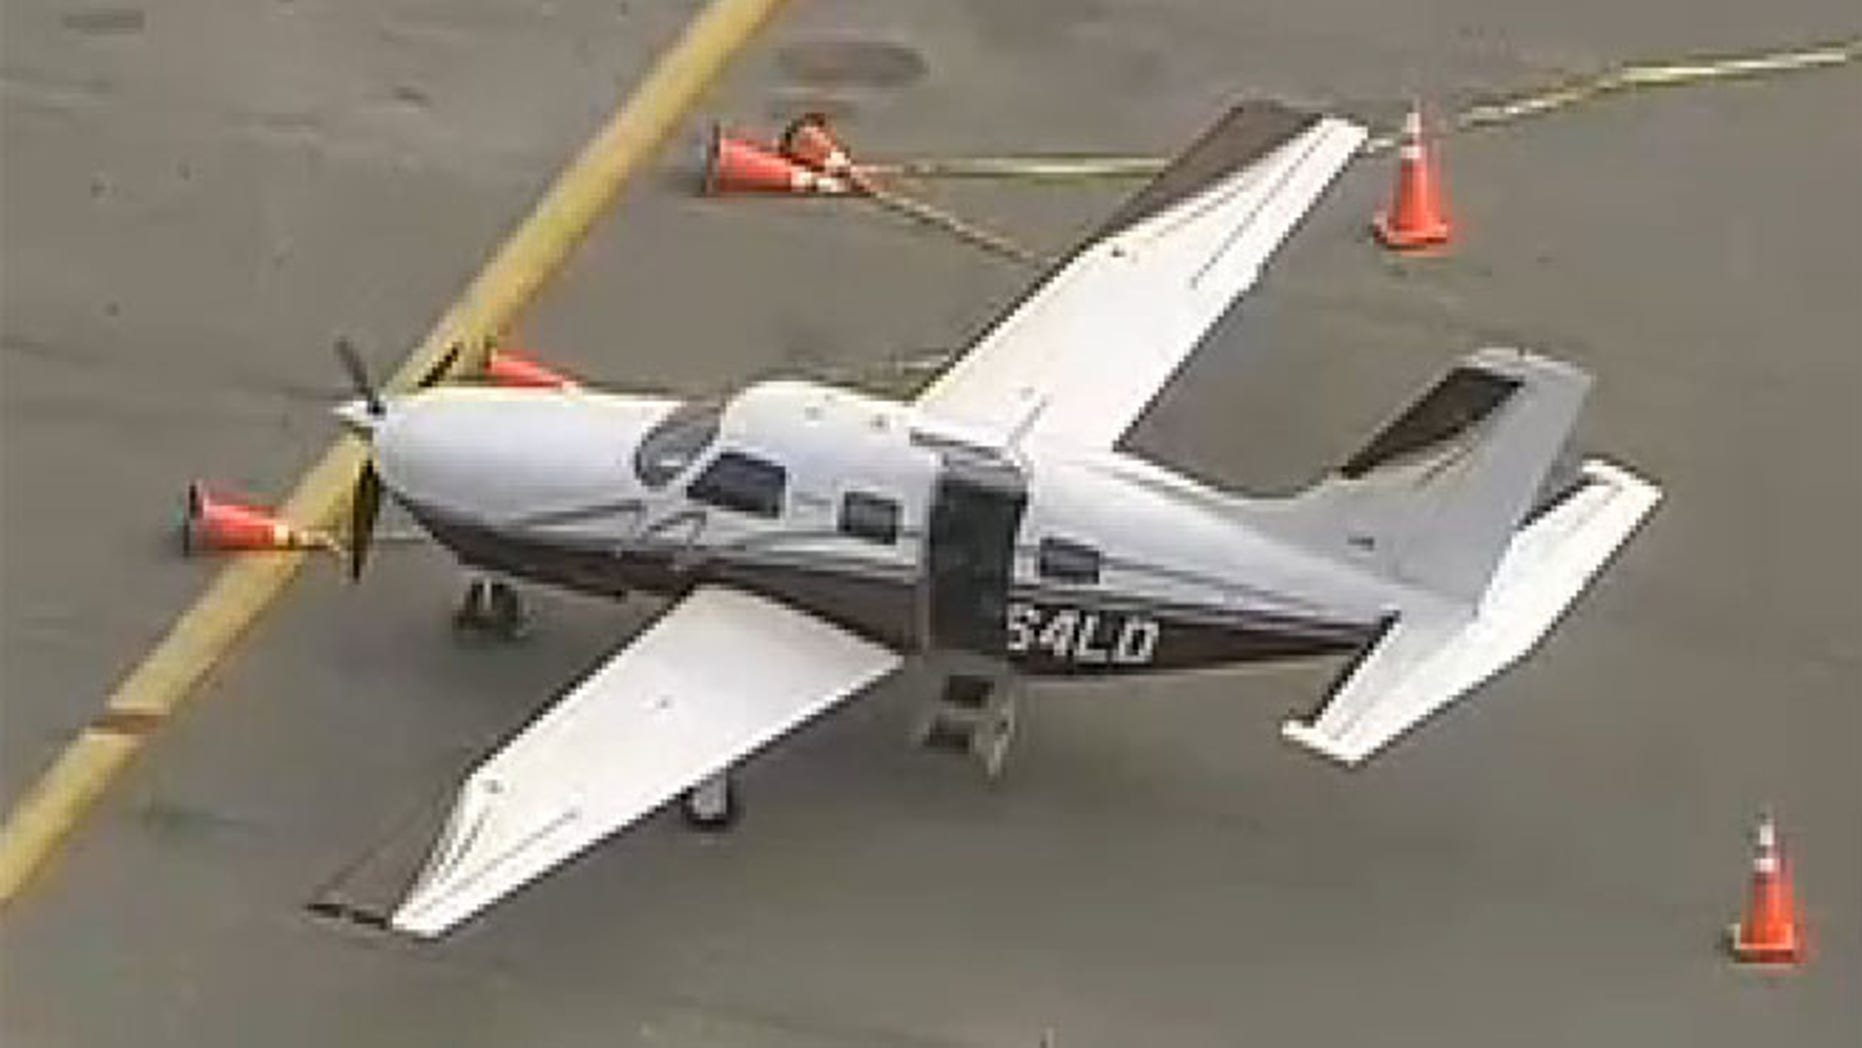 Nov. 14, 2013: A passenger fell out of this Piper PA 46 aircraft, which is shown at the Kendall-Tamiami Executive Airport in Miami.